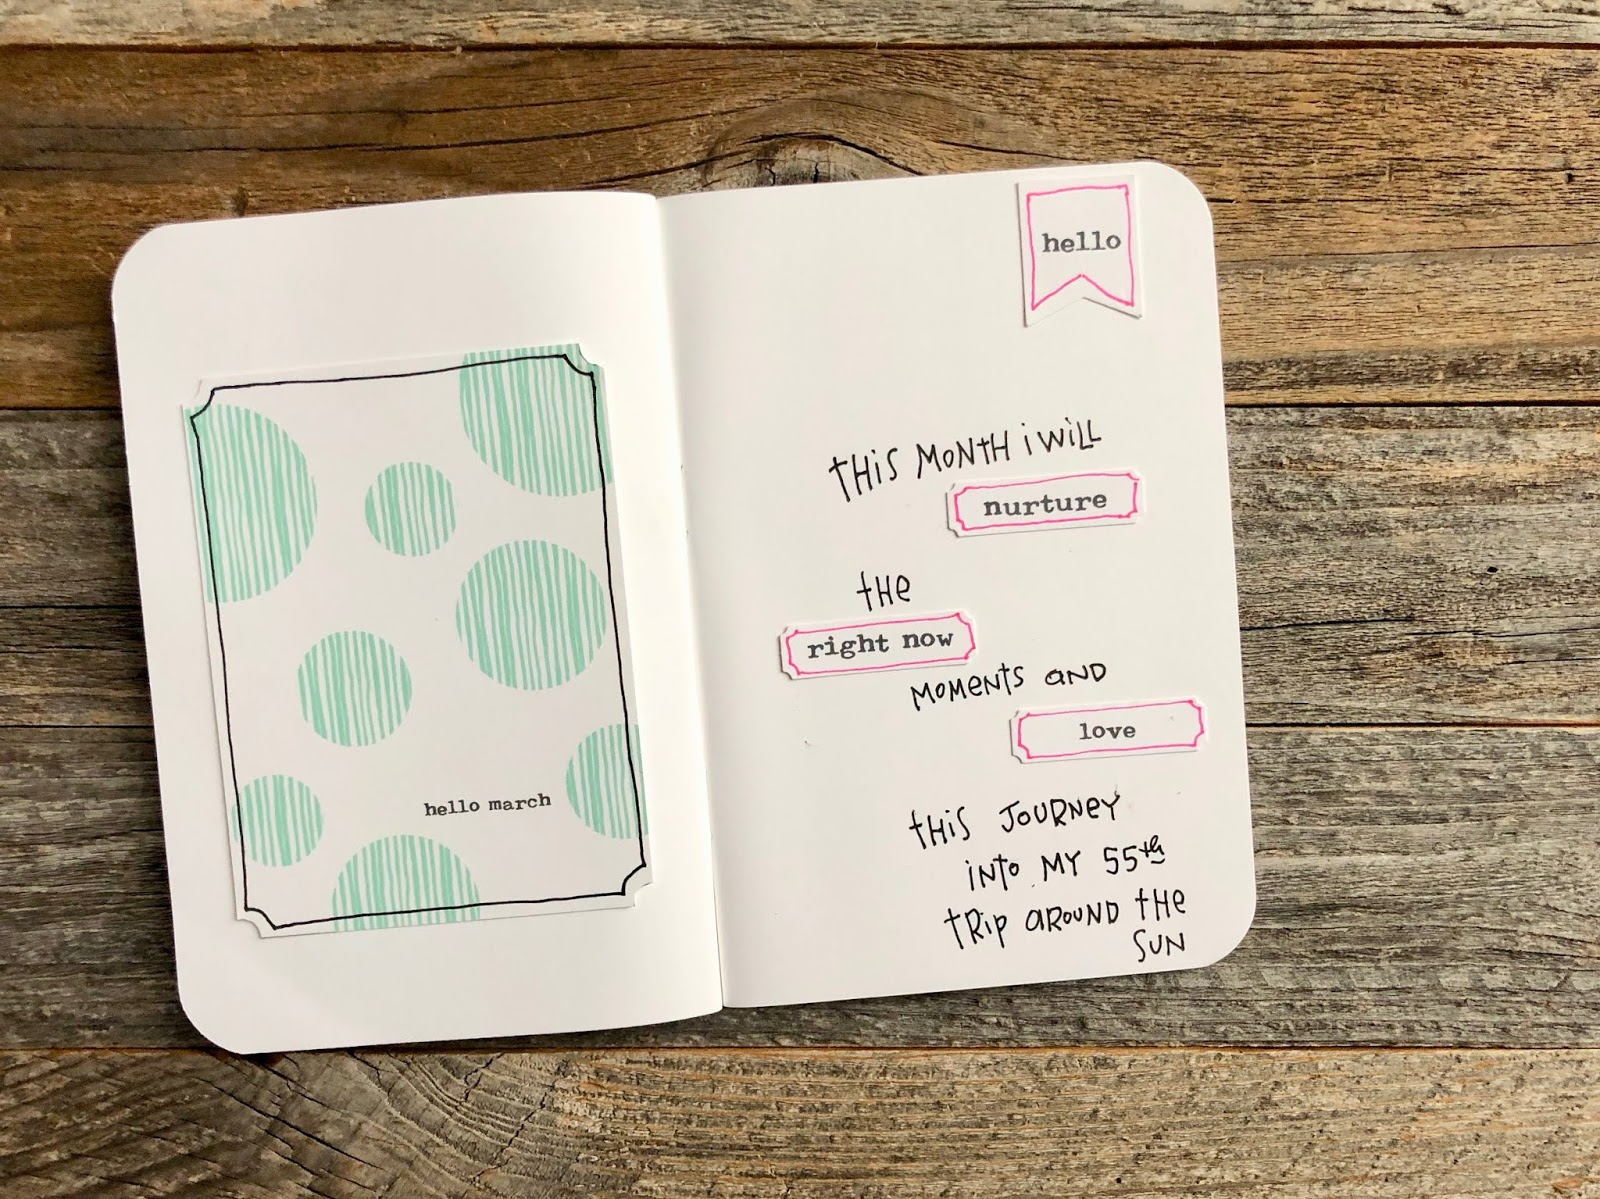 #Hello March #travelers notebook #A6 notebook #midori #Hello #Right Now #Love #Nurture